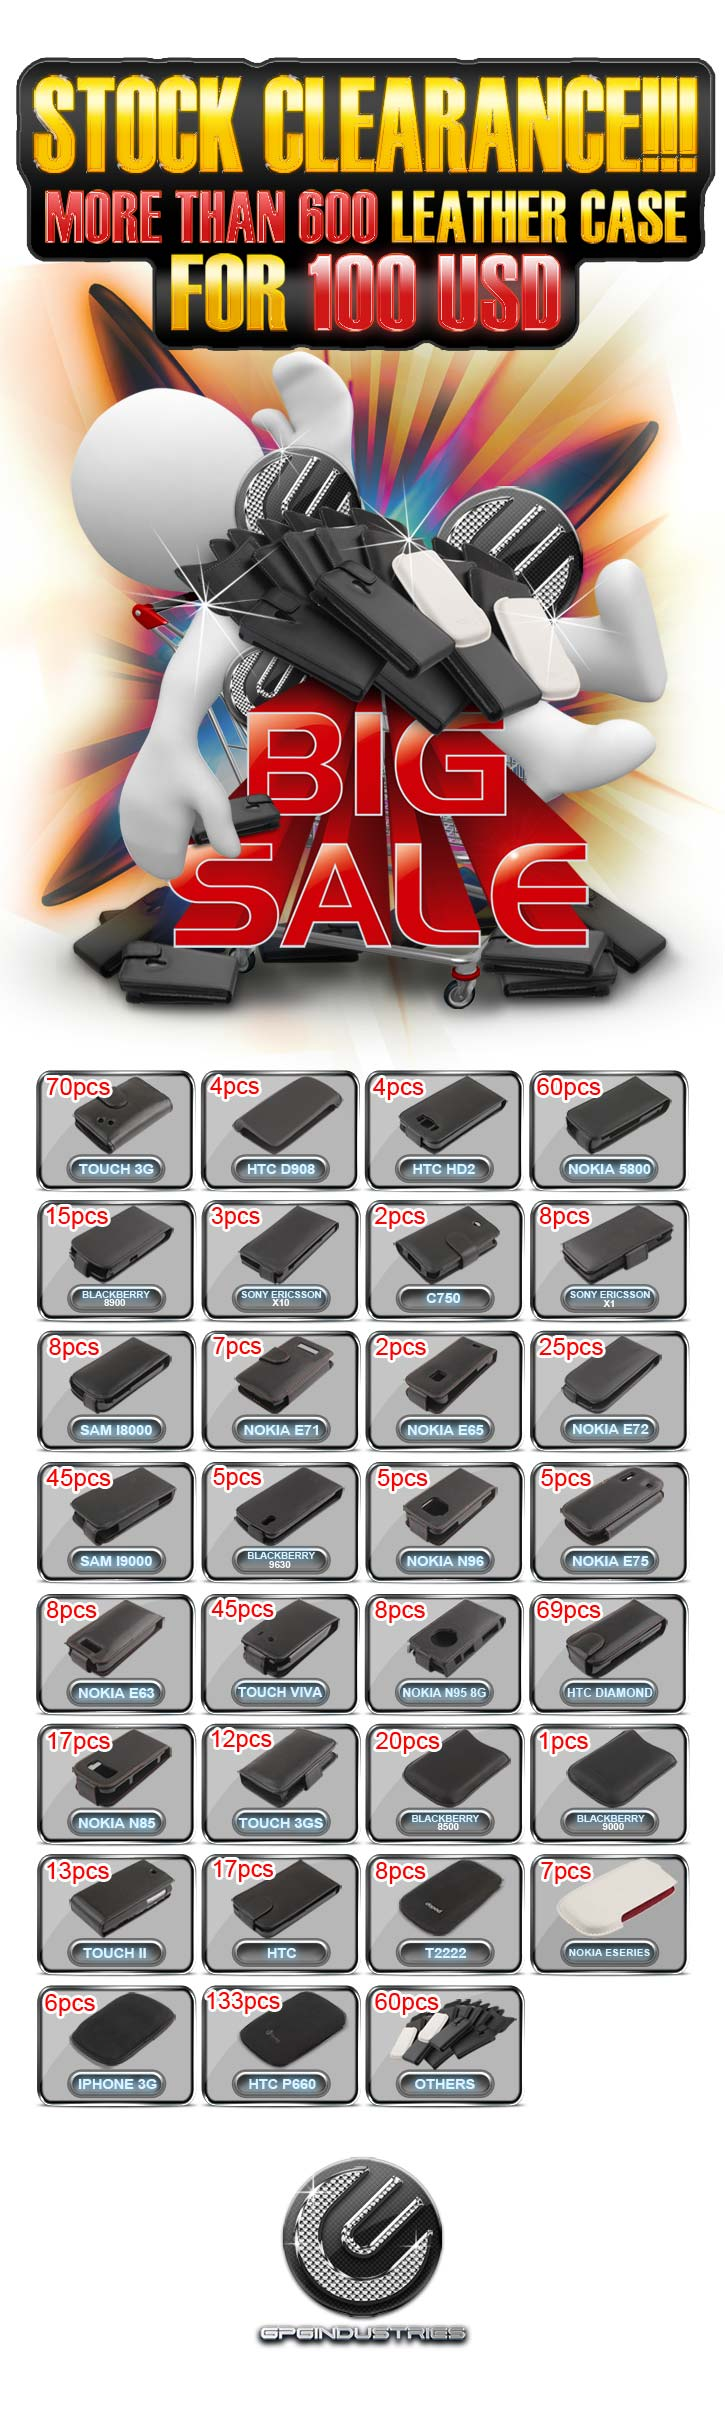 2011 08 29 STOCK CLEARANCE!!! More than 600 Leather case for 100 USD a 725